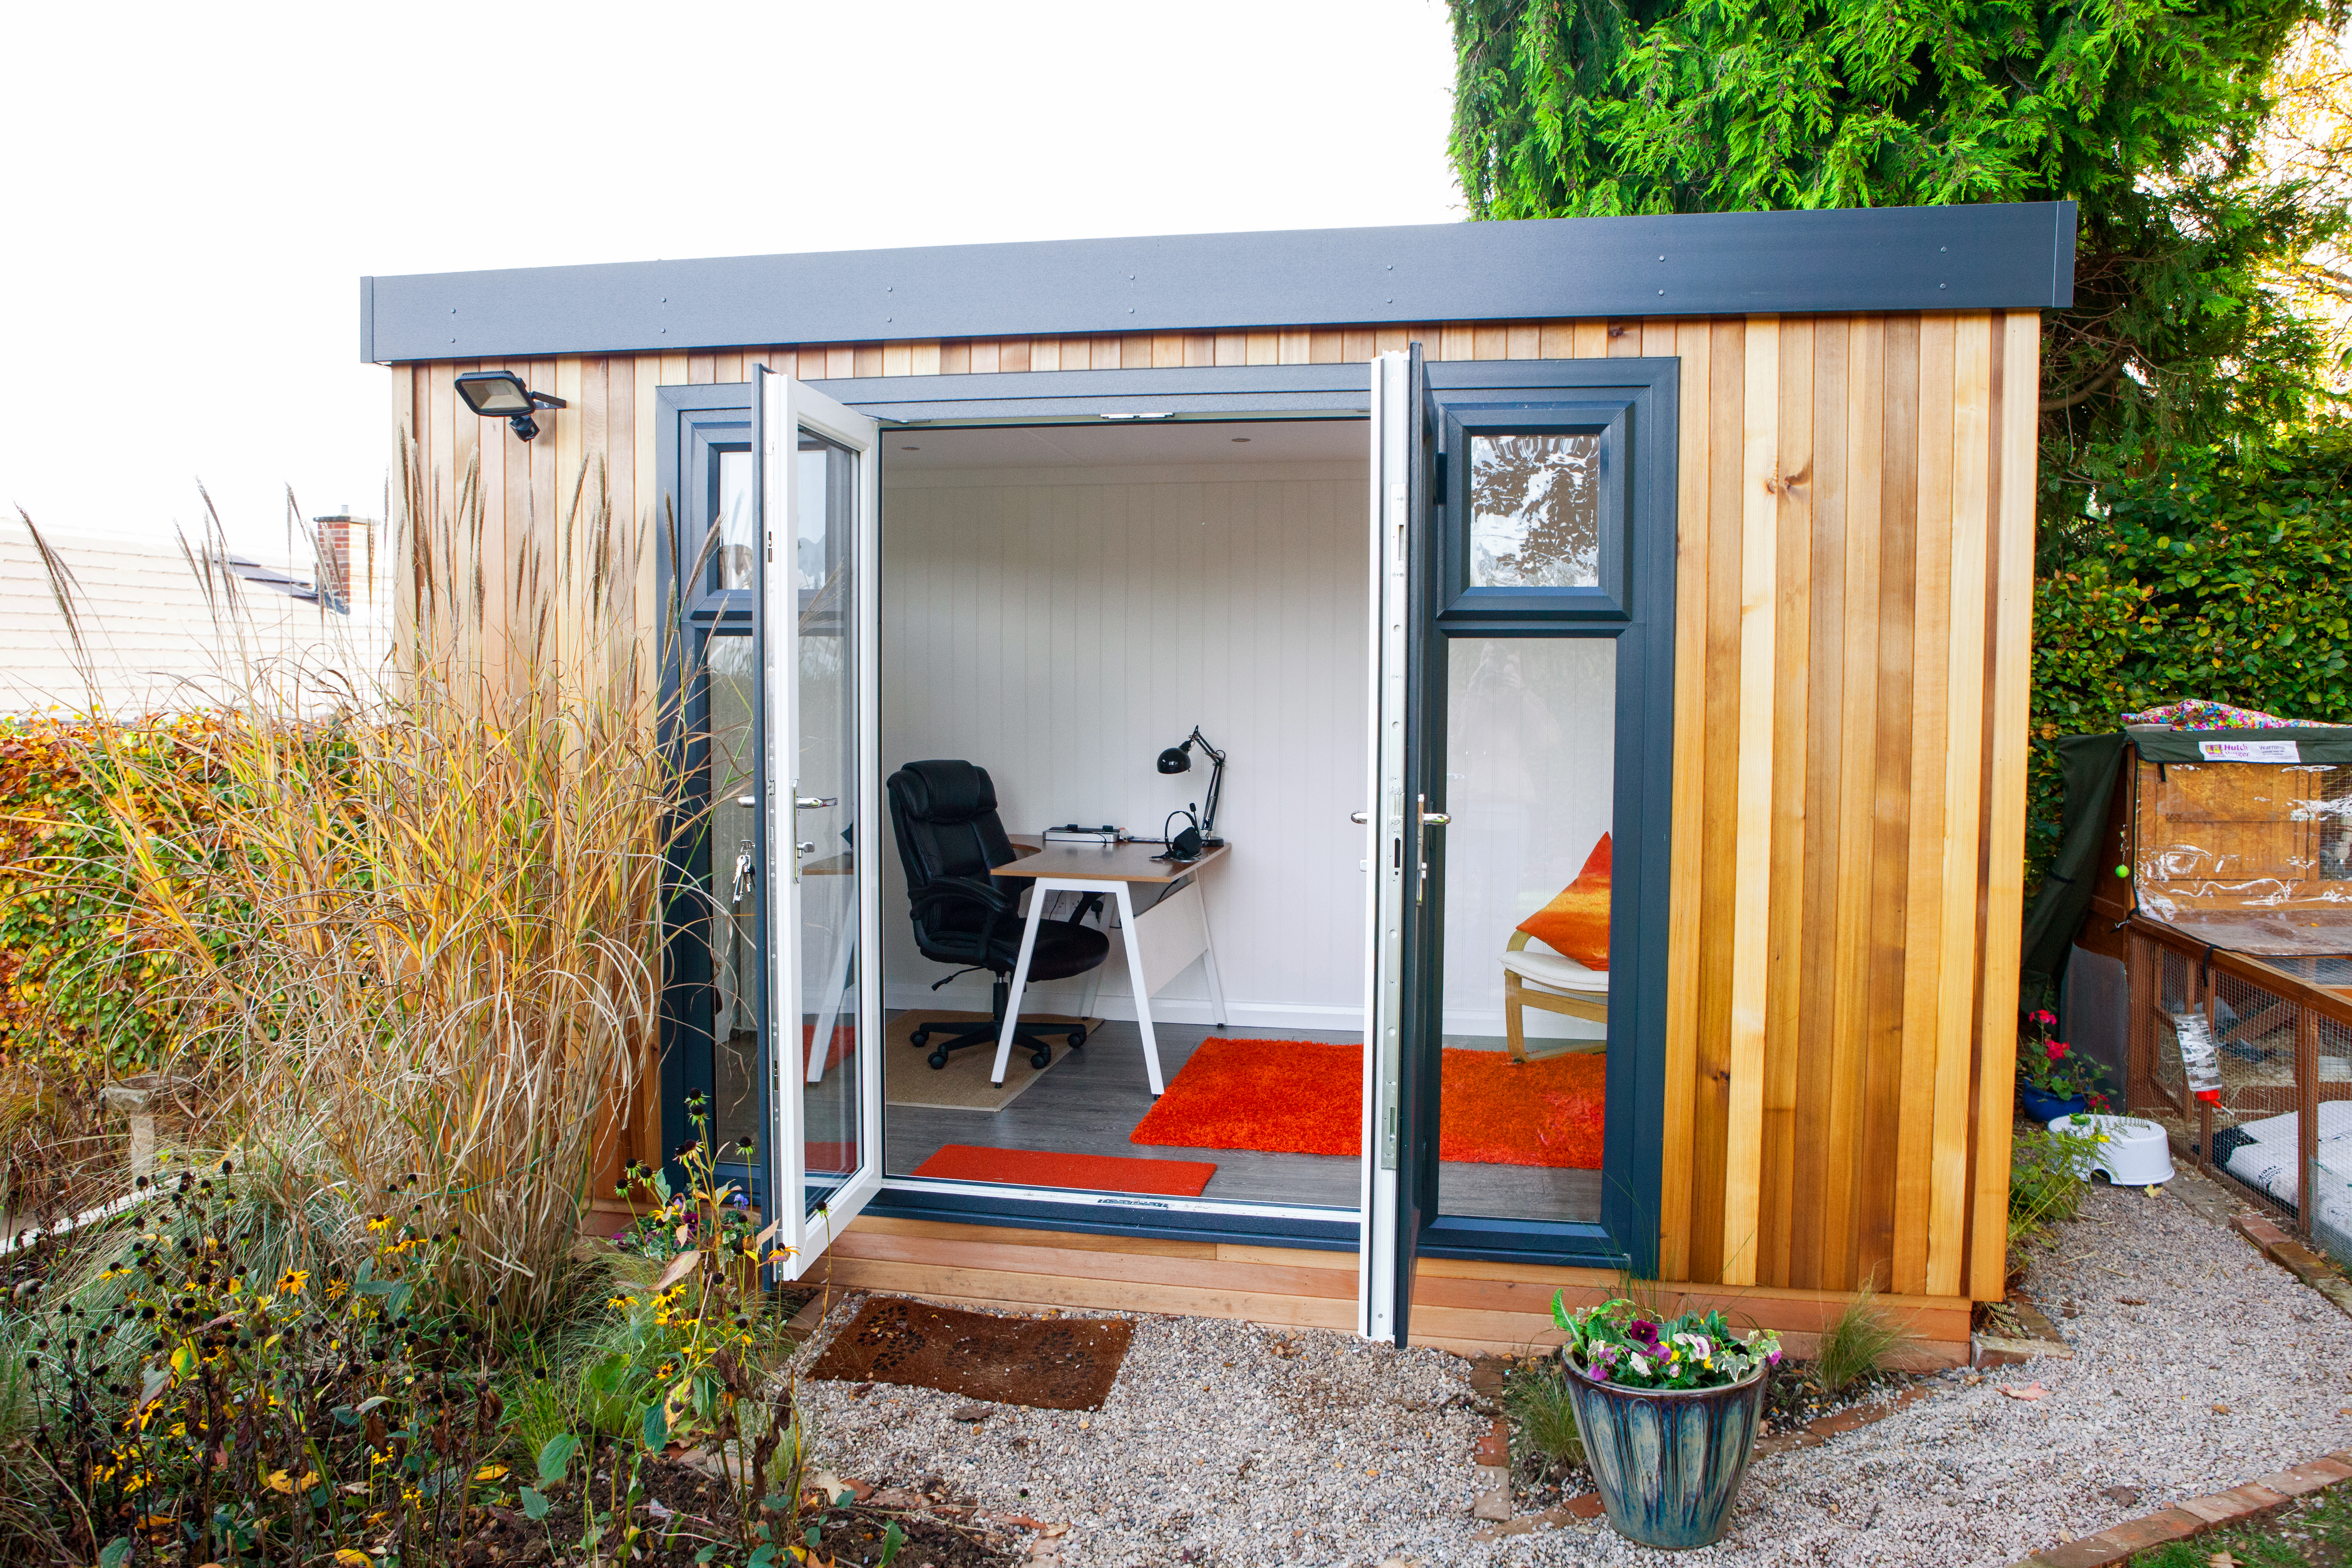 Amazing Uses For Having Your Own Garden Room